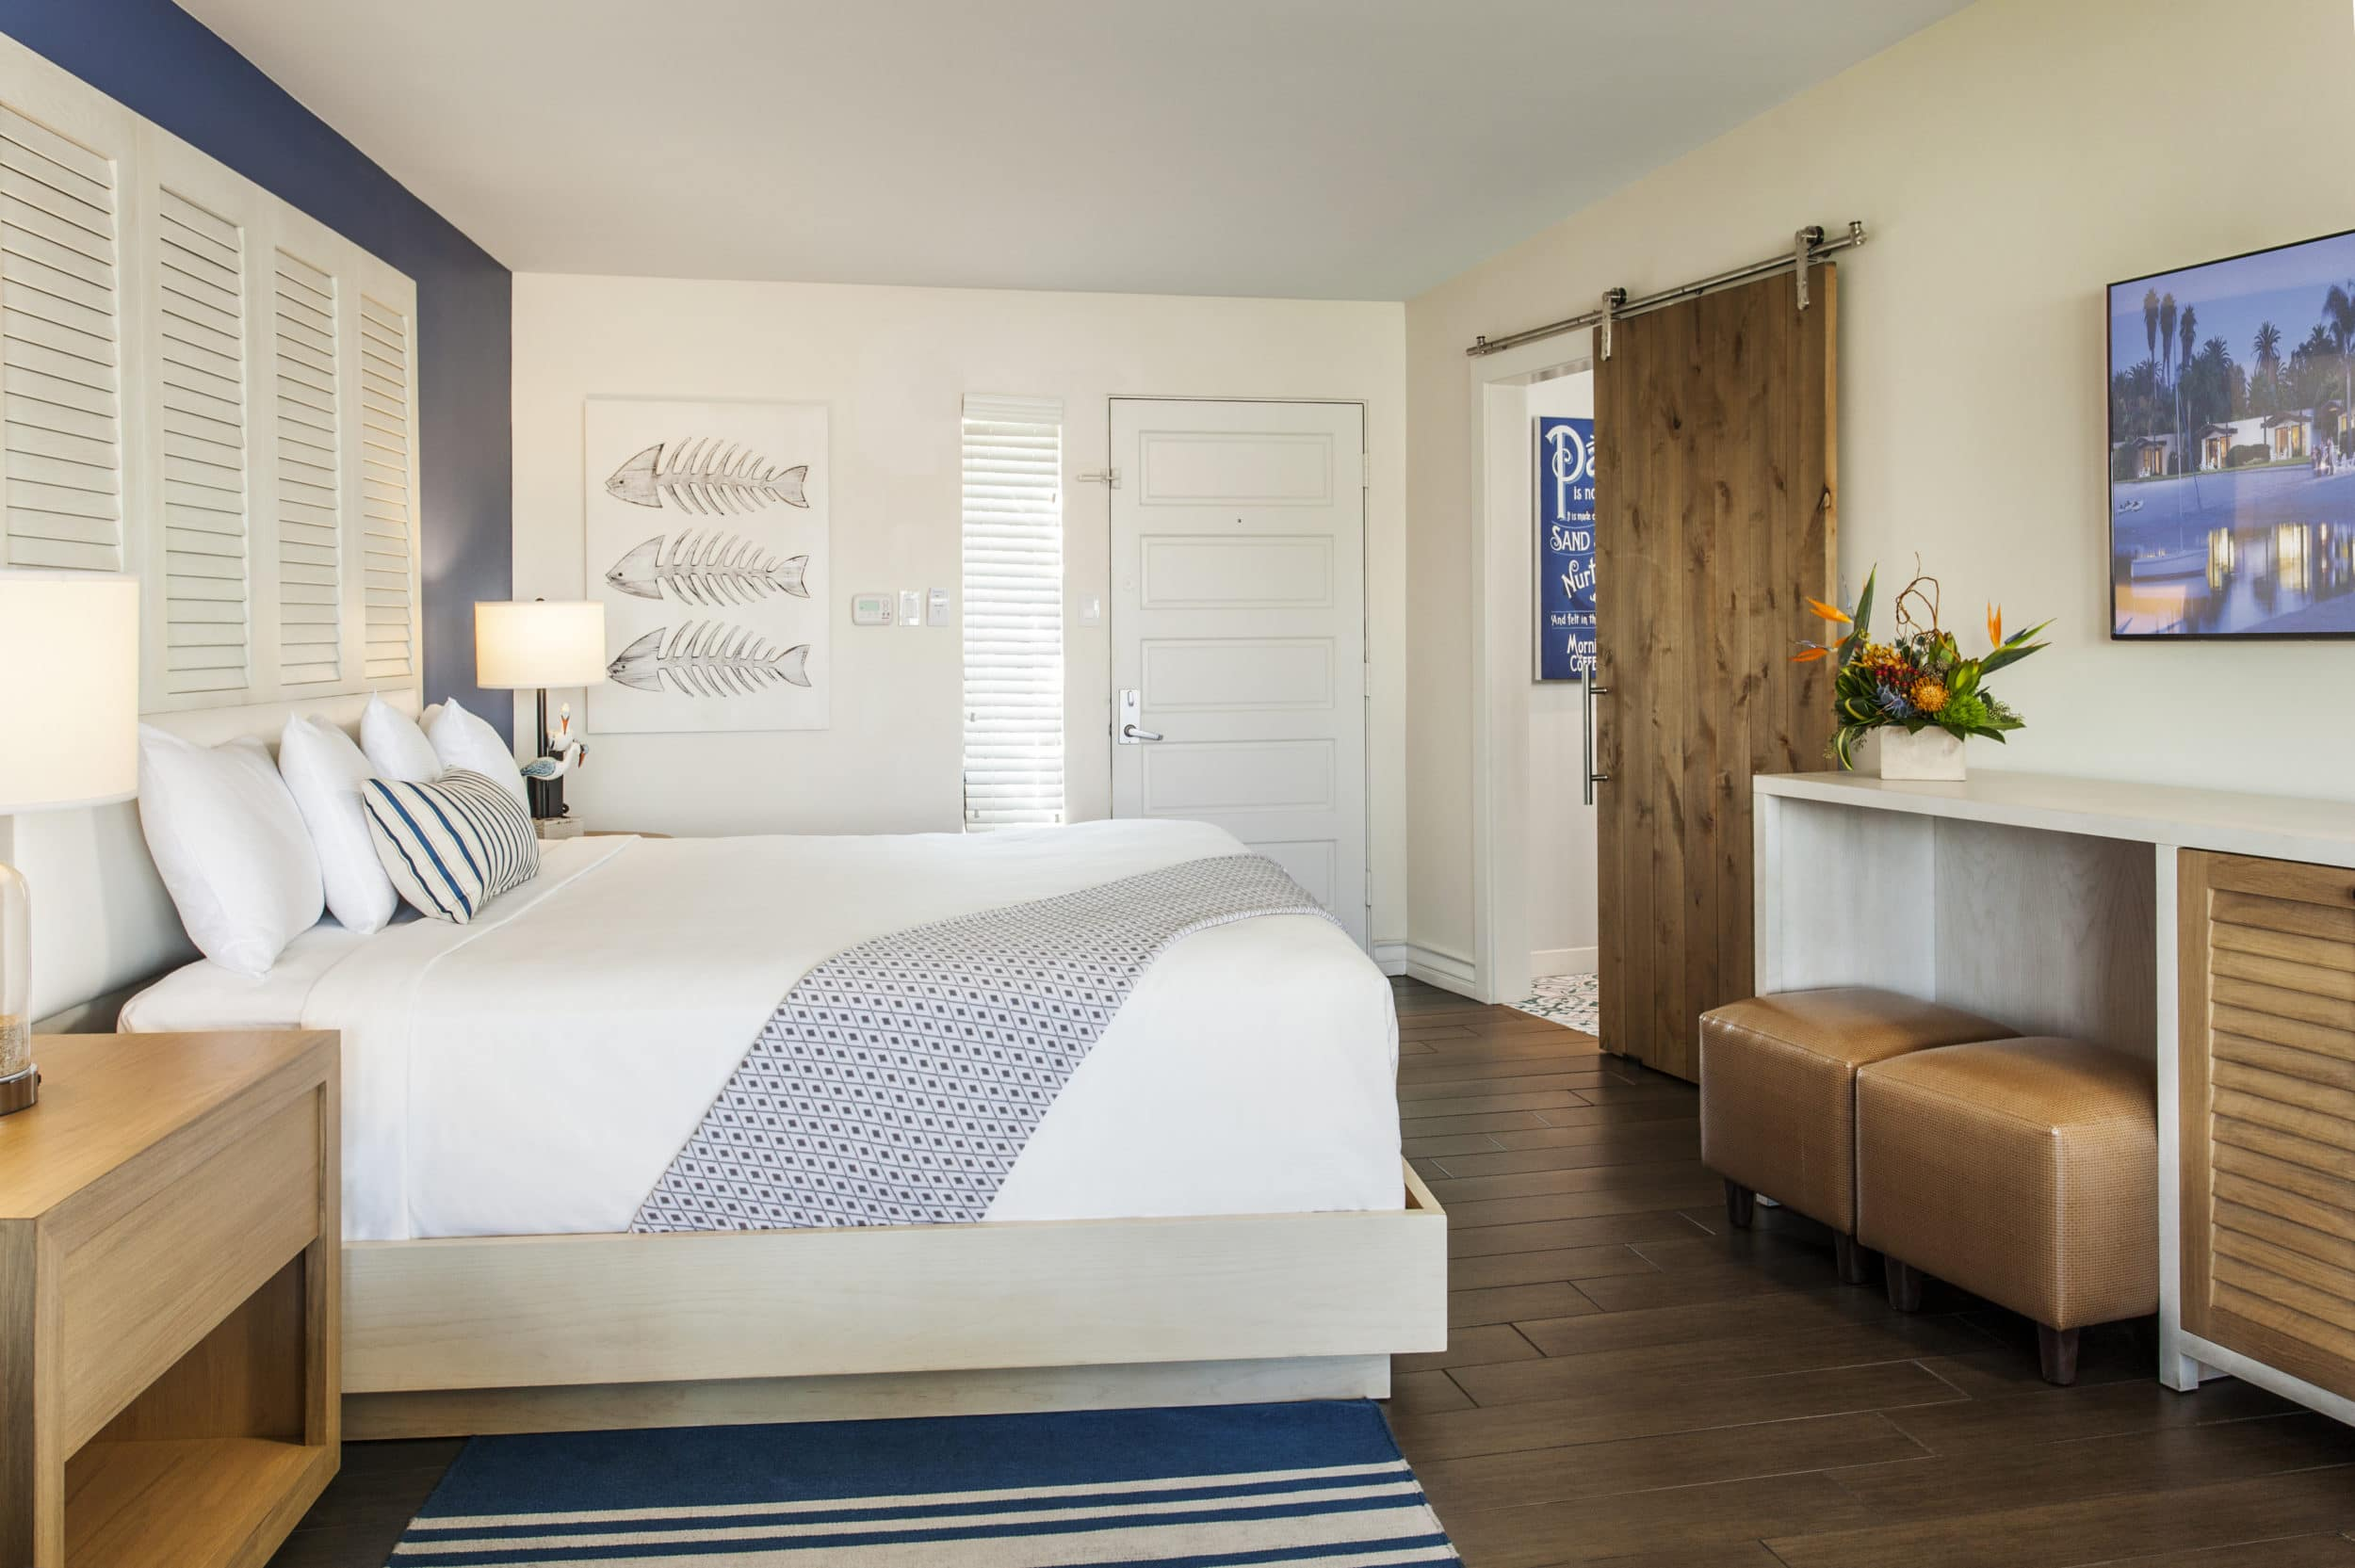 A suite bedroom at Paradise Point San Diego resort on Mission Bay